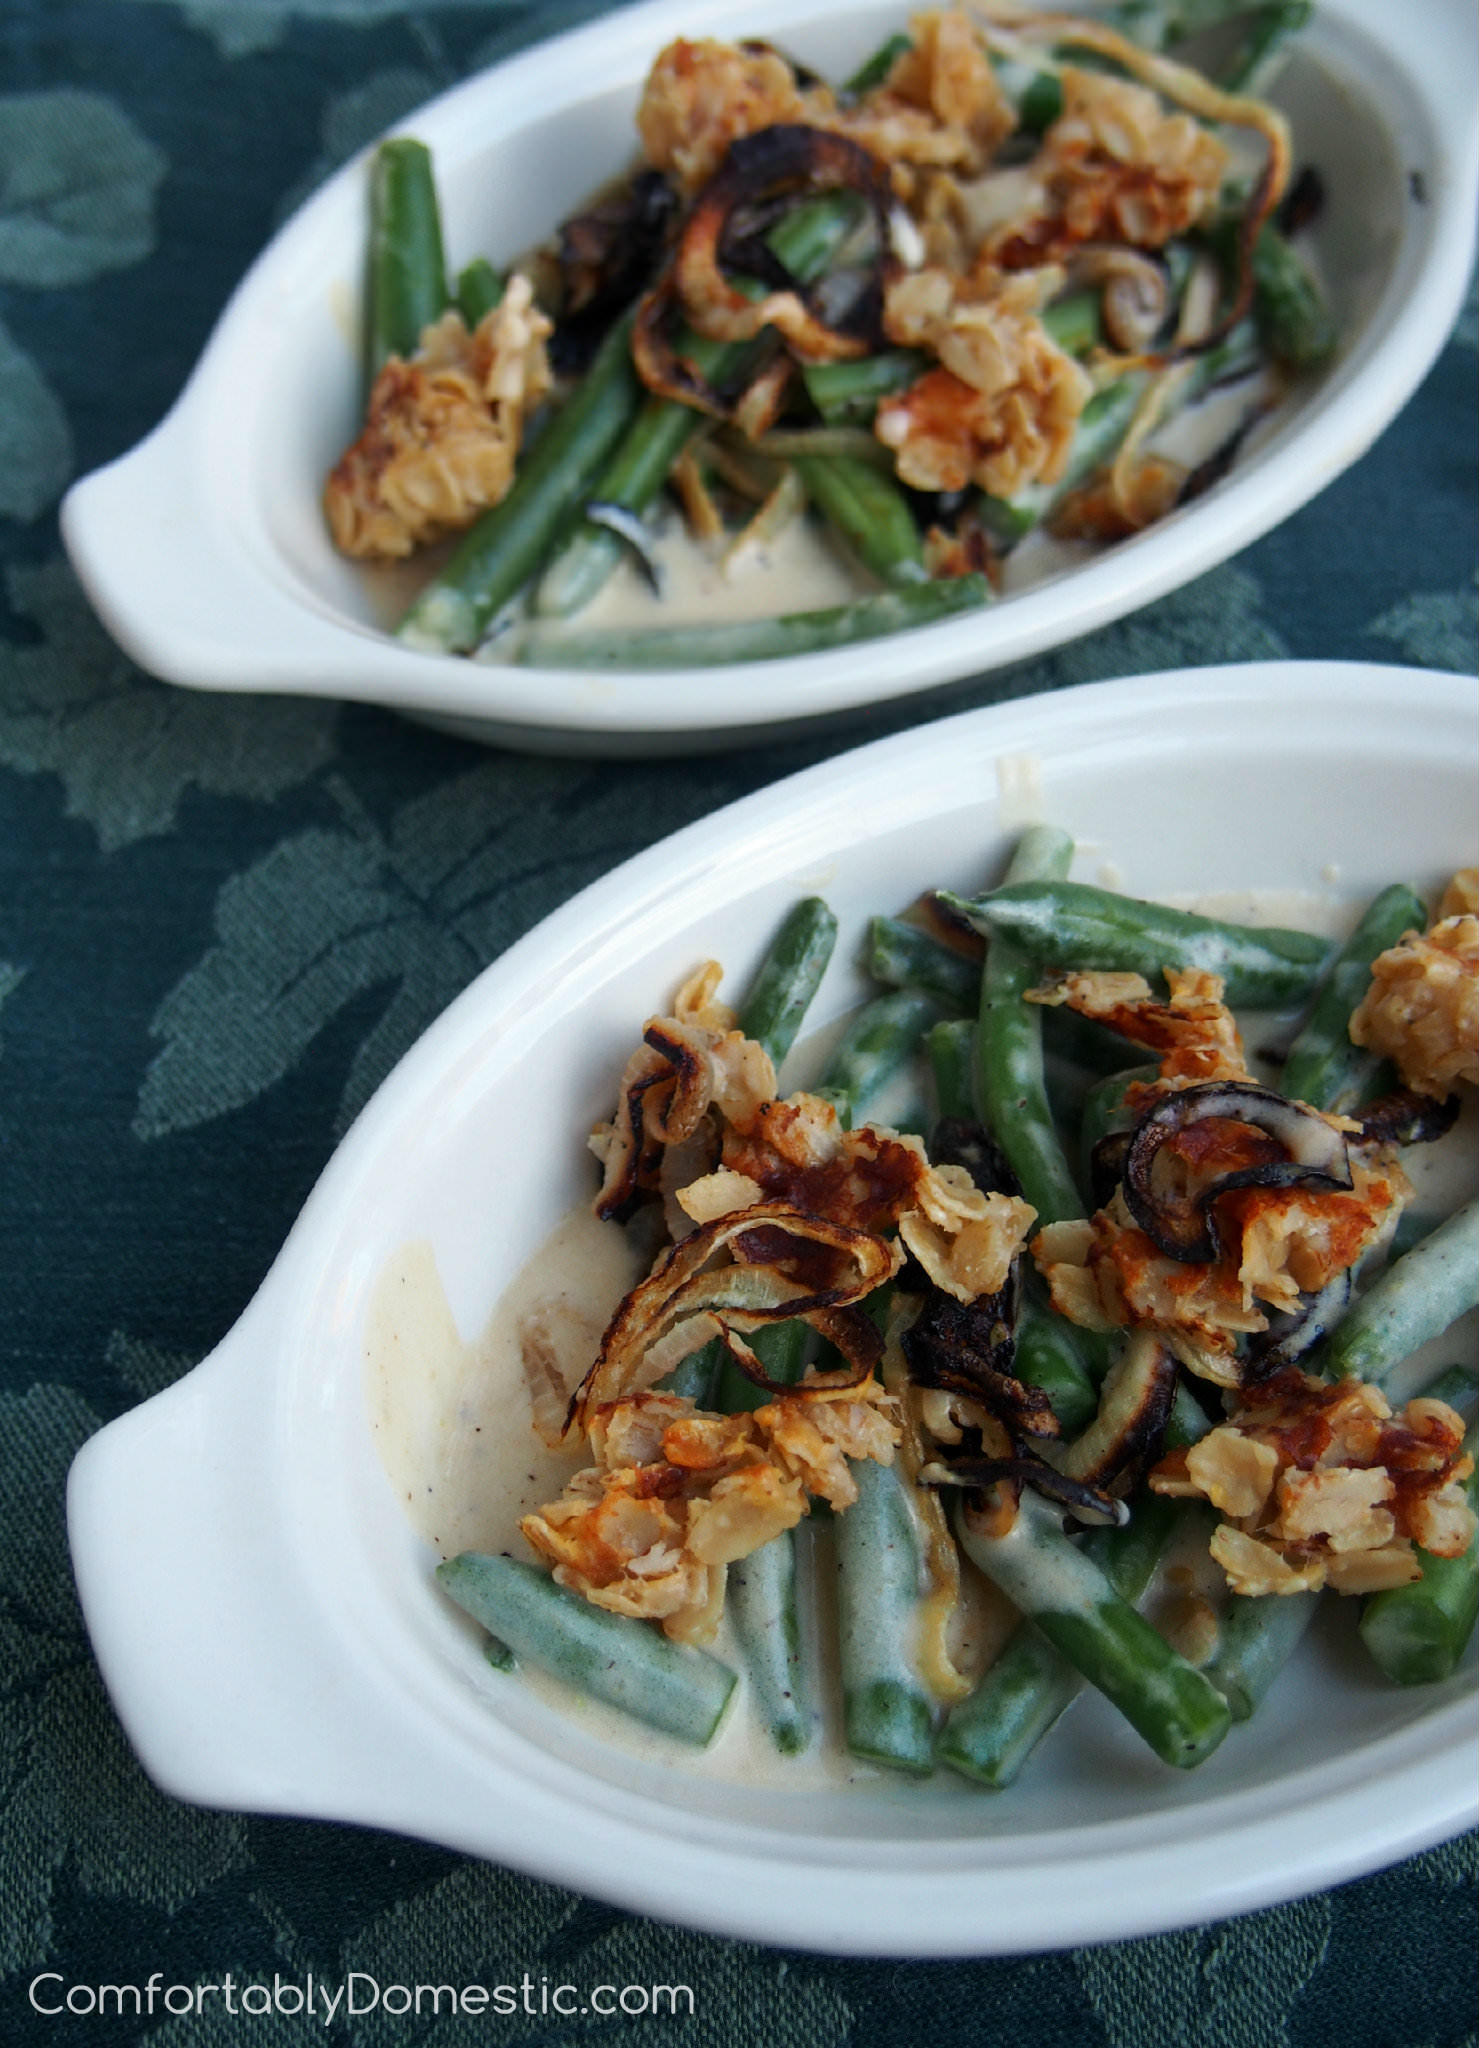 Modern Green Bean Casserole | ComfortablyDomestic.com uses fresh green beans slathered in a sauce made from scratch, and topped with real, crisp onions, and a savory cheese streusel.